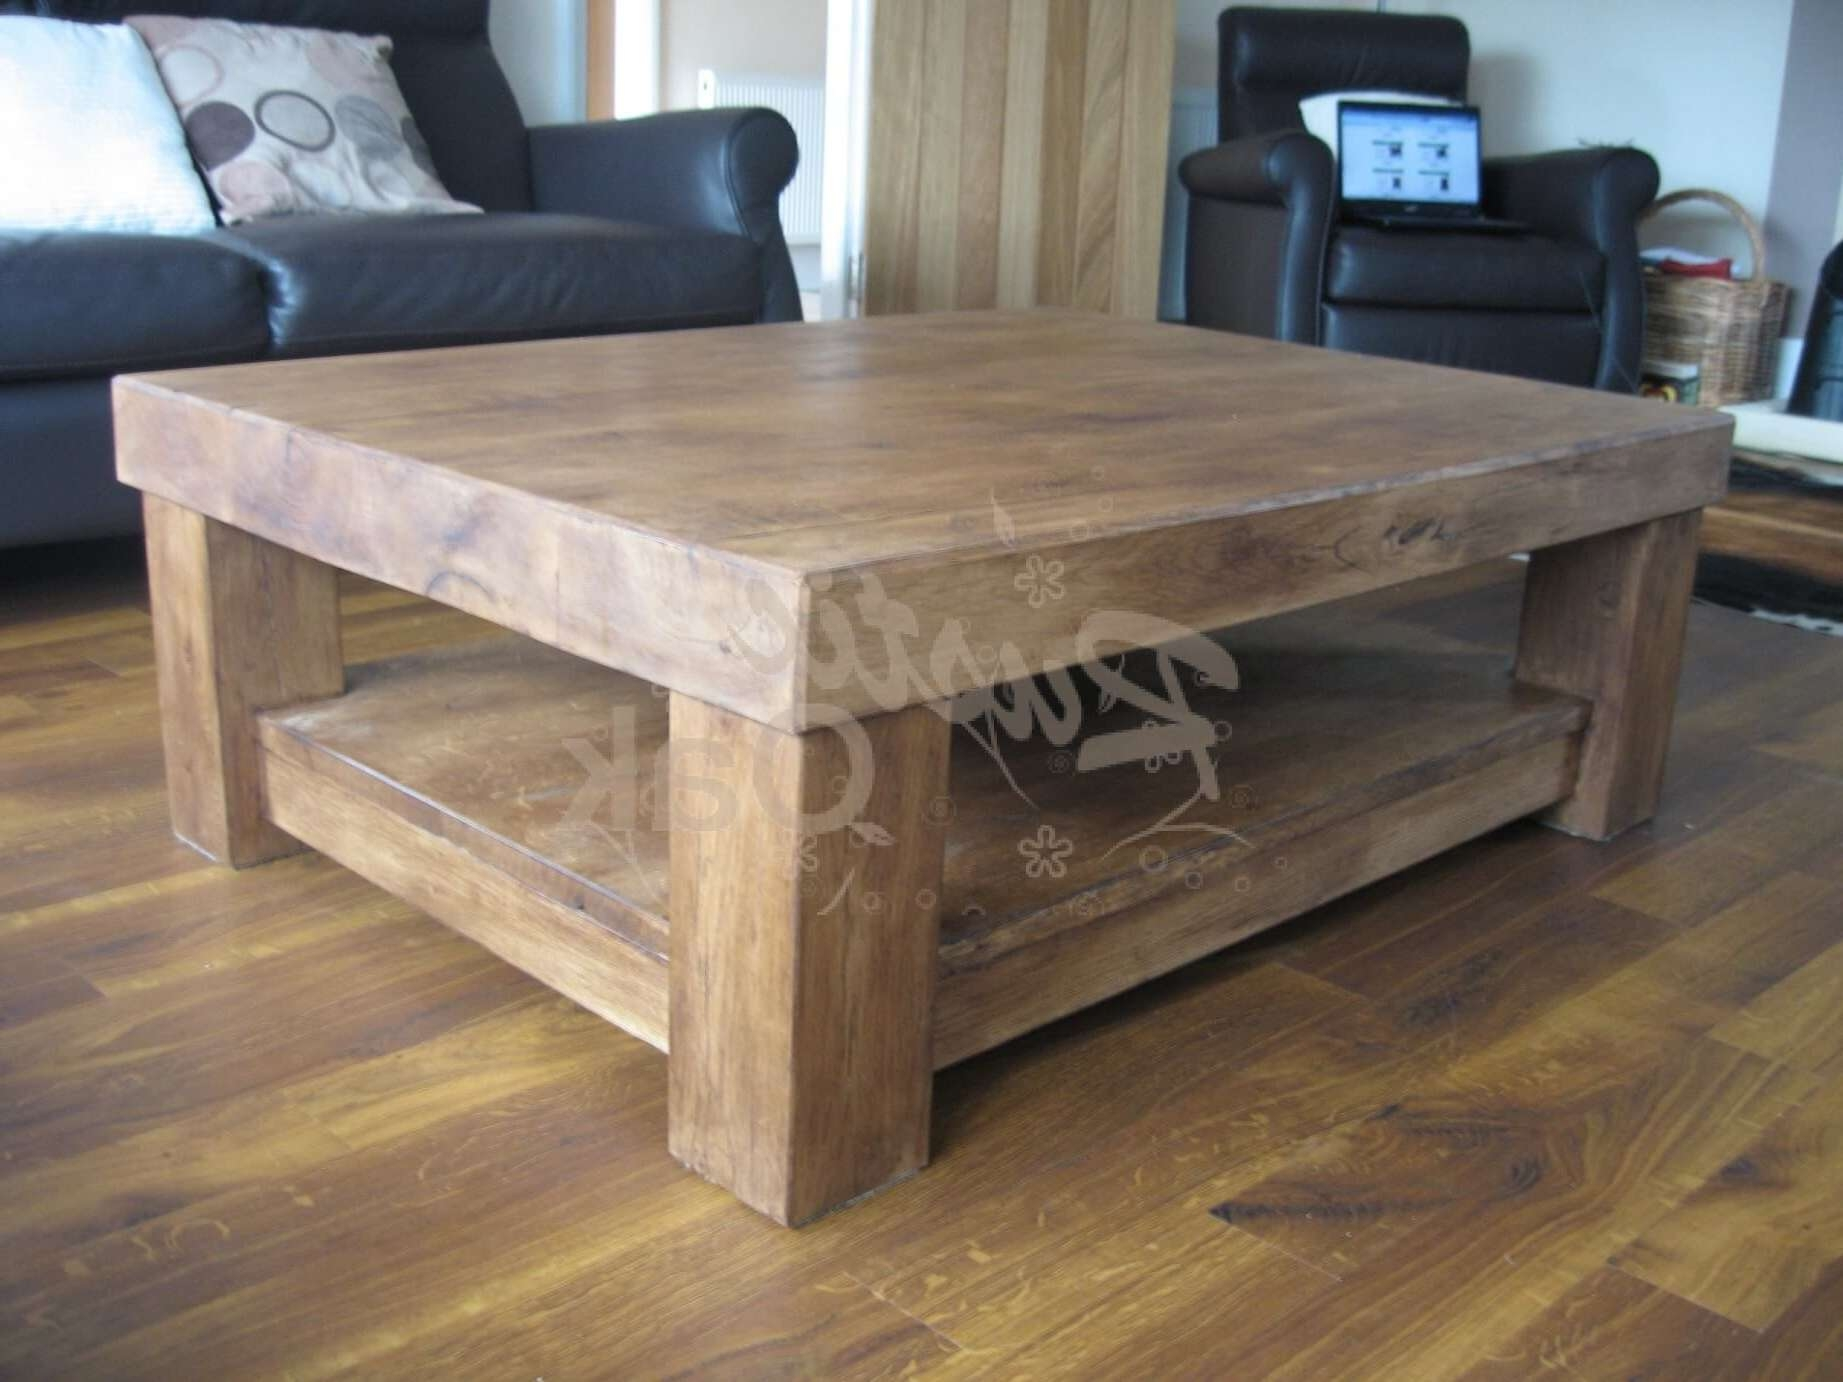 Wonderful Chunky Wood Coffee Table Part - 2: Most Popular Chunky Wood Coffee Tables Inside Chunky 4 Leg Coffee Table  With Shelf U2013 Rustic